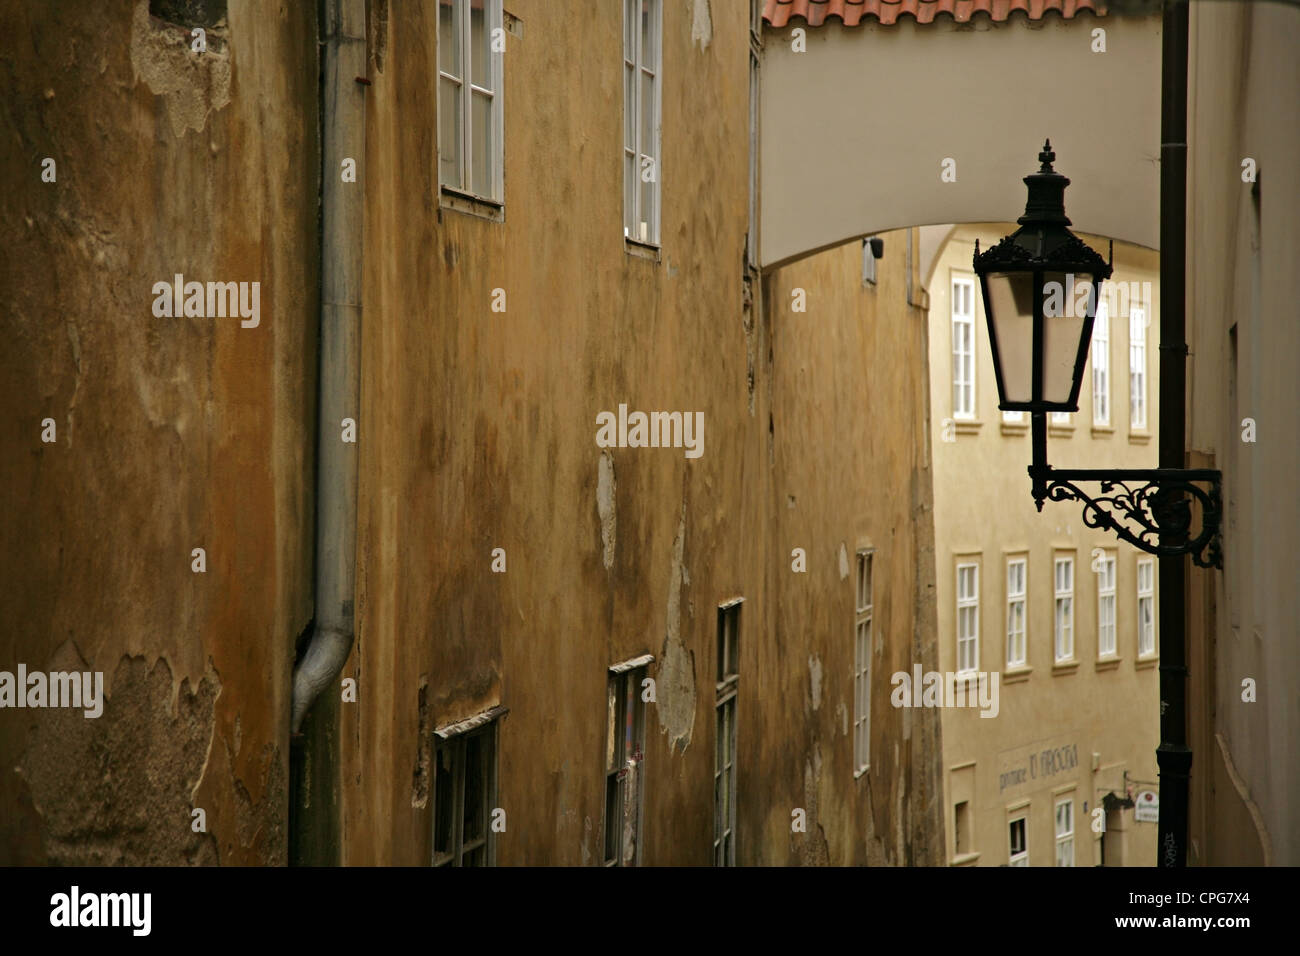 Old wrought iron streetlamp in narrow sidestreet, Prague, Czech Republic. - Stock Image